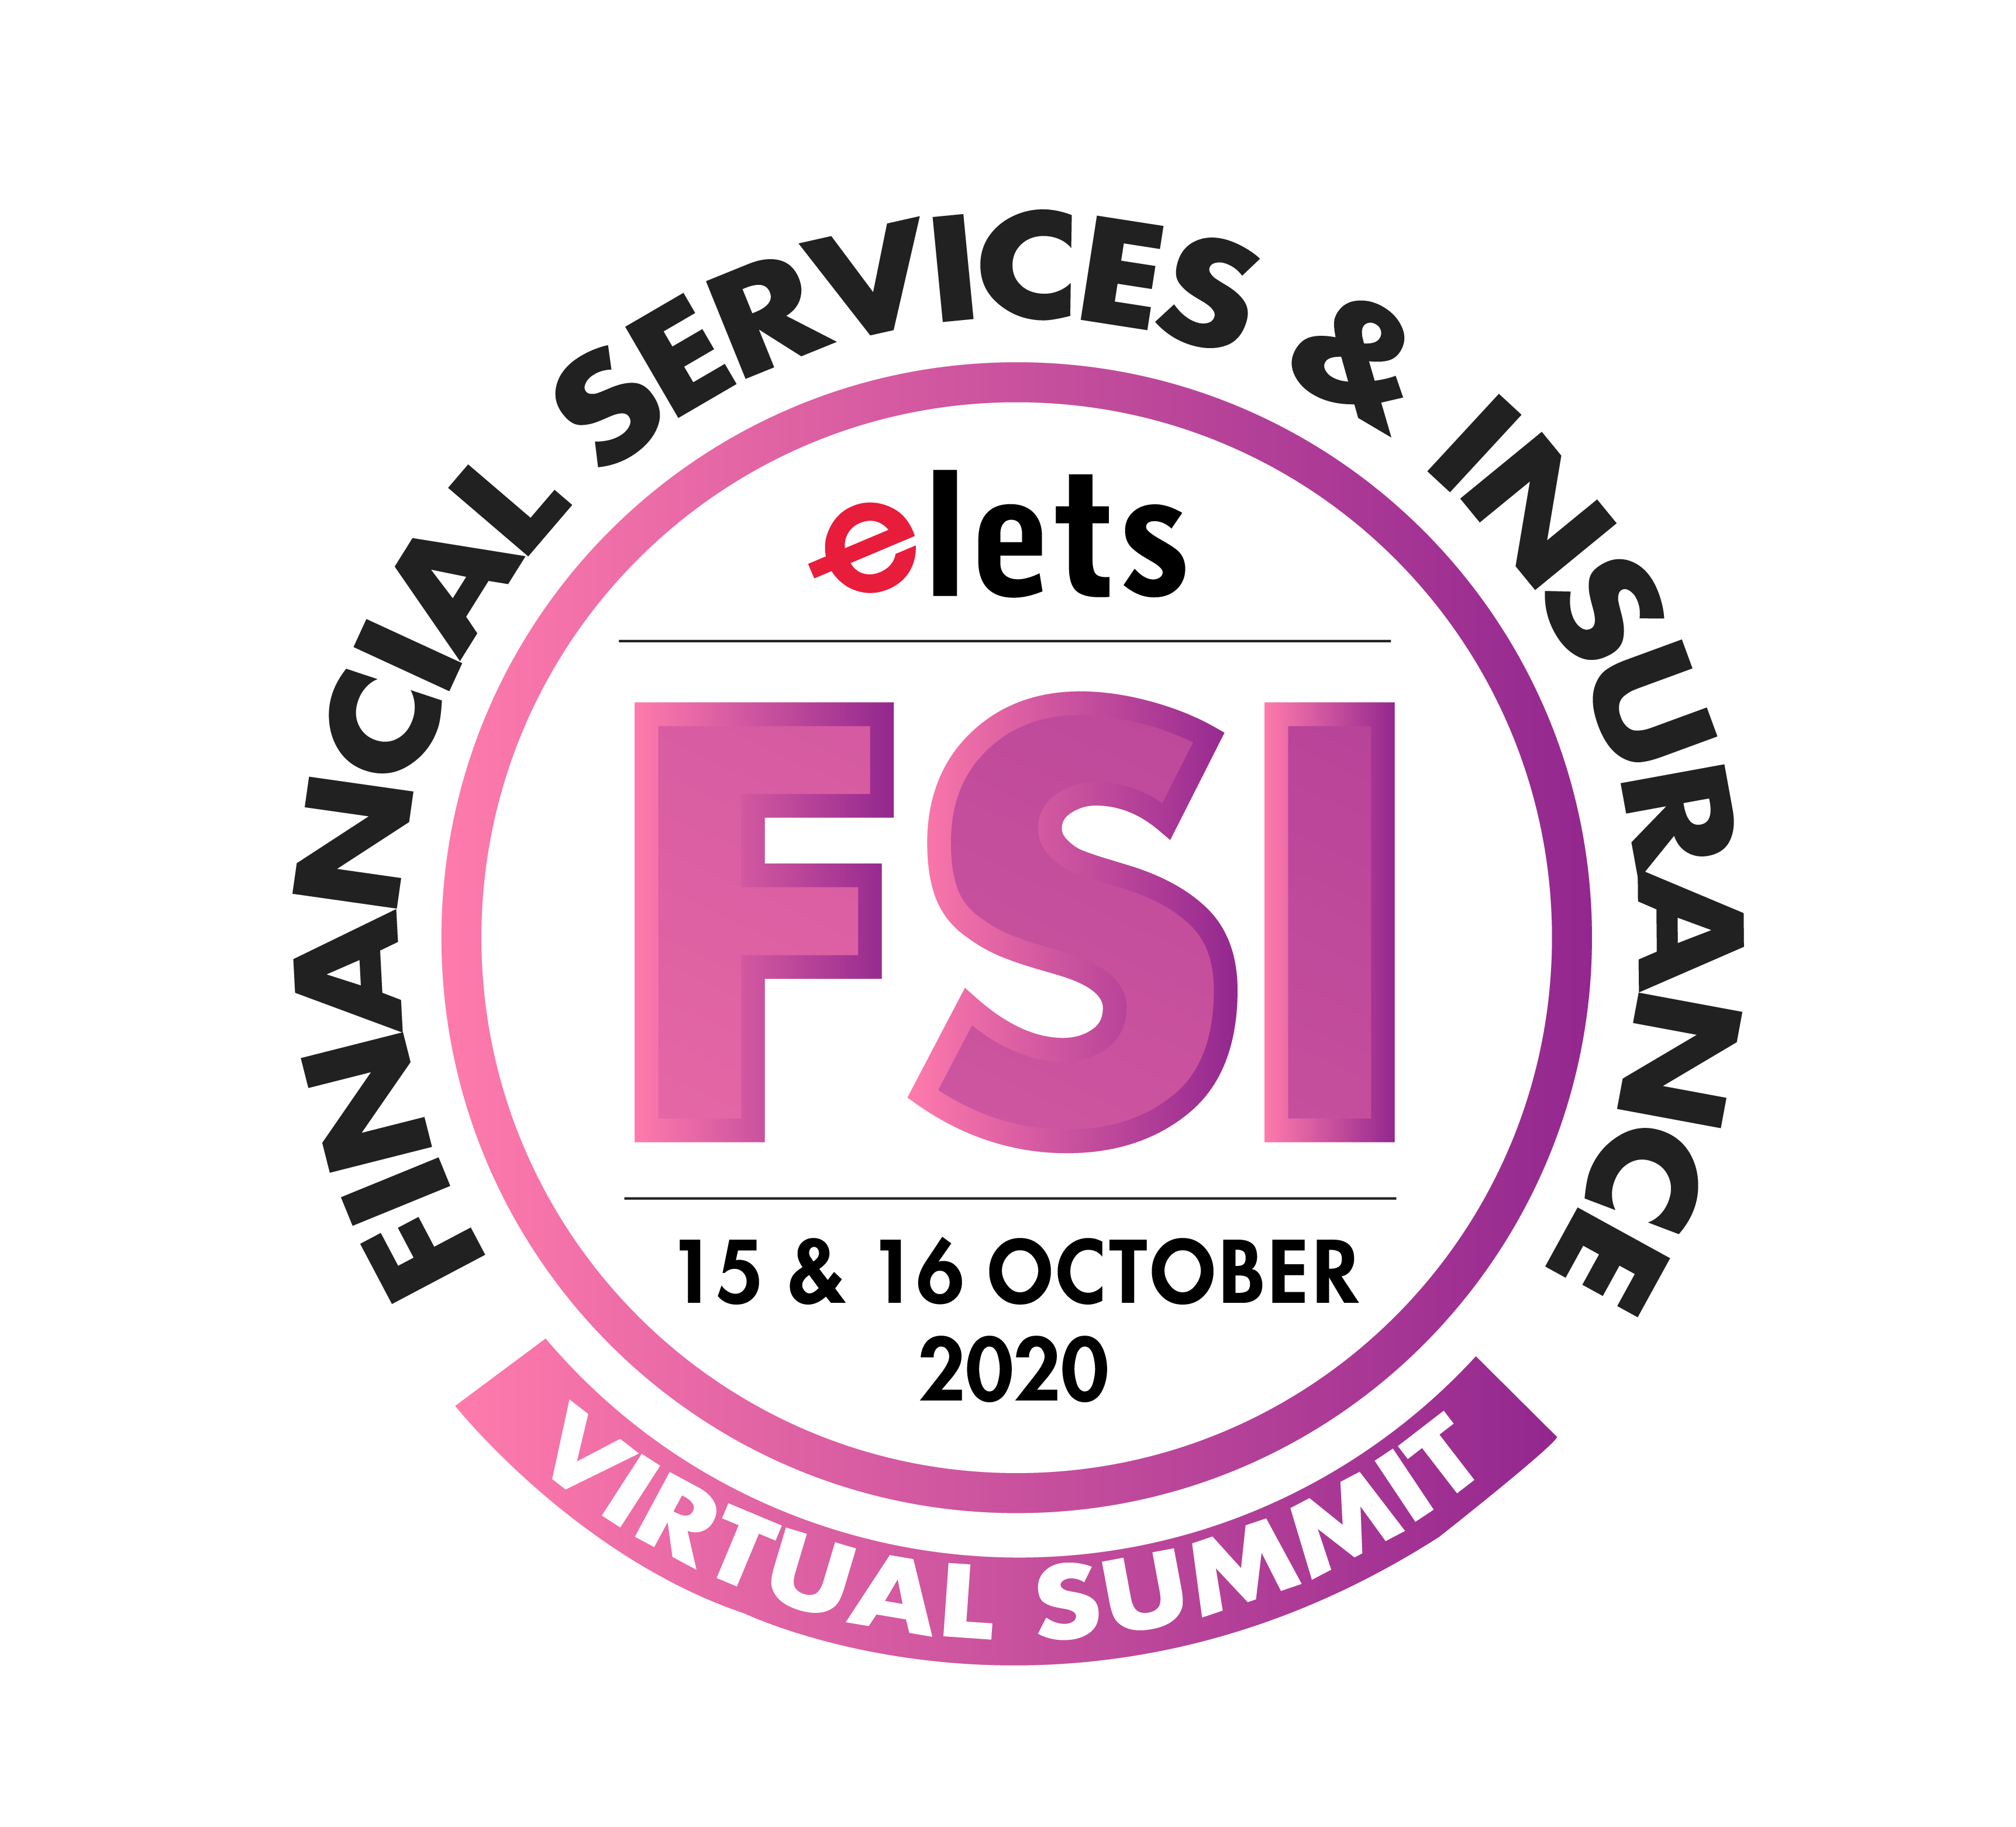 Financial Services & Insurance Virtual Summit